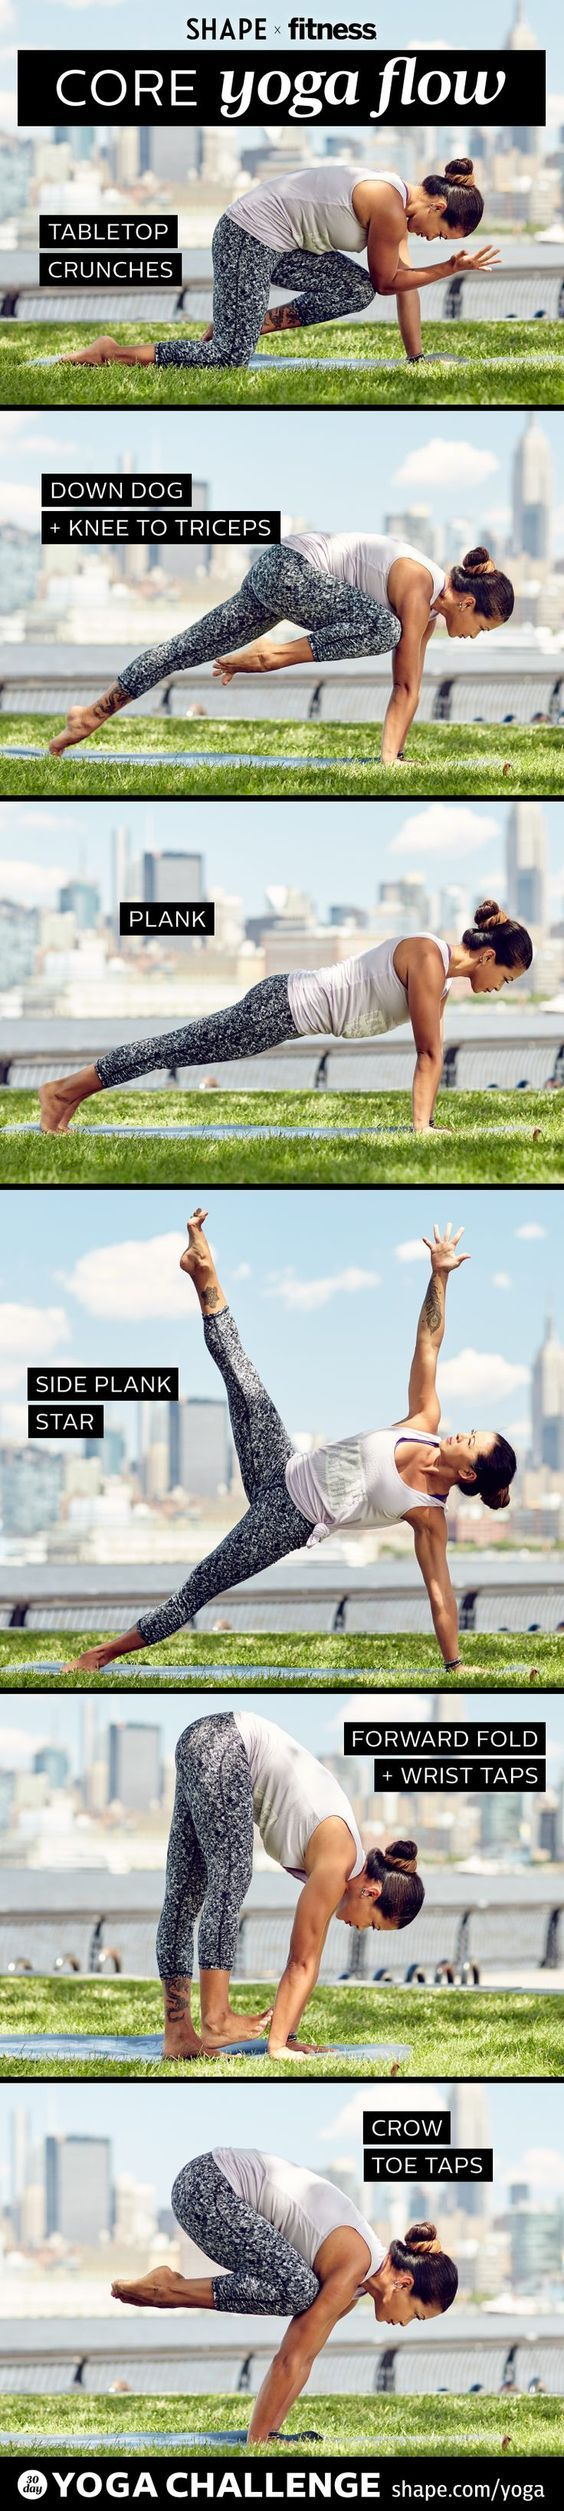 DownDog Yoga for Fun & Fitness: Core Yoga Flow. From the Downdog Diary Yoga Blog found exclusively at DownDog Boutique